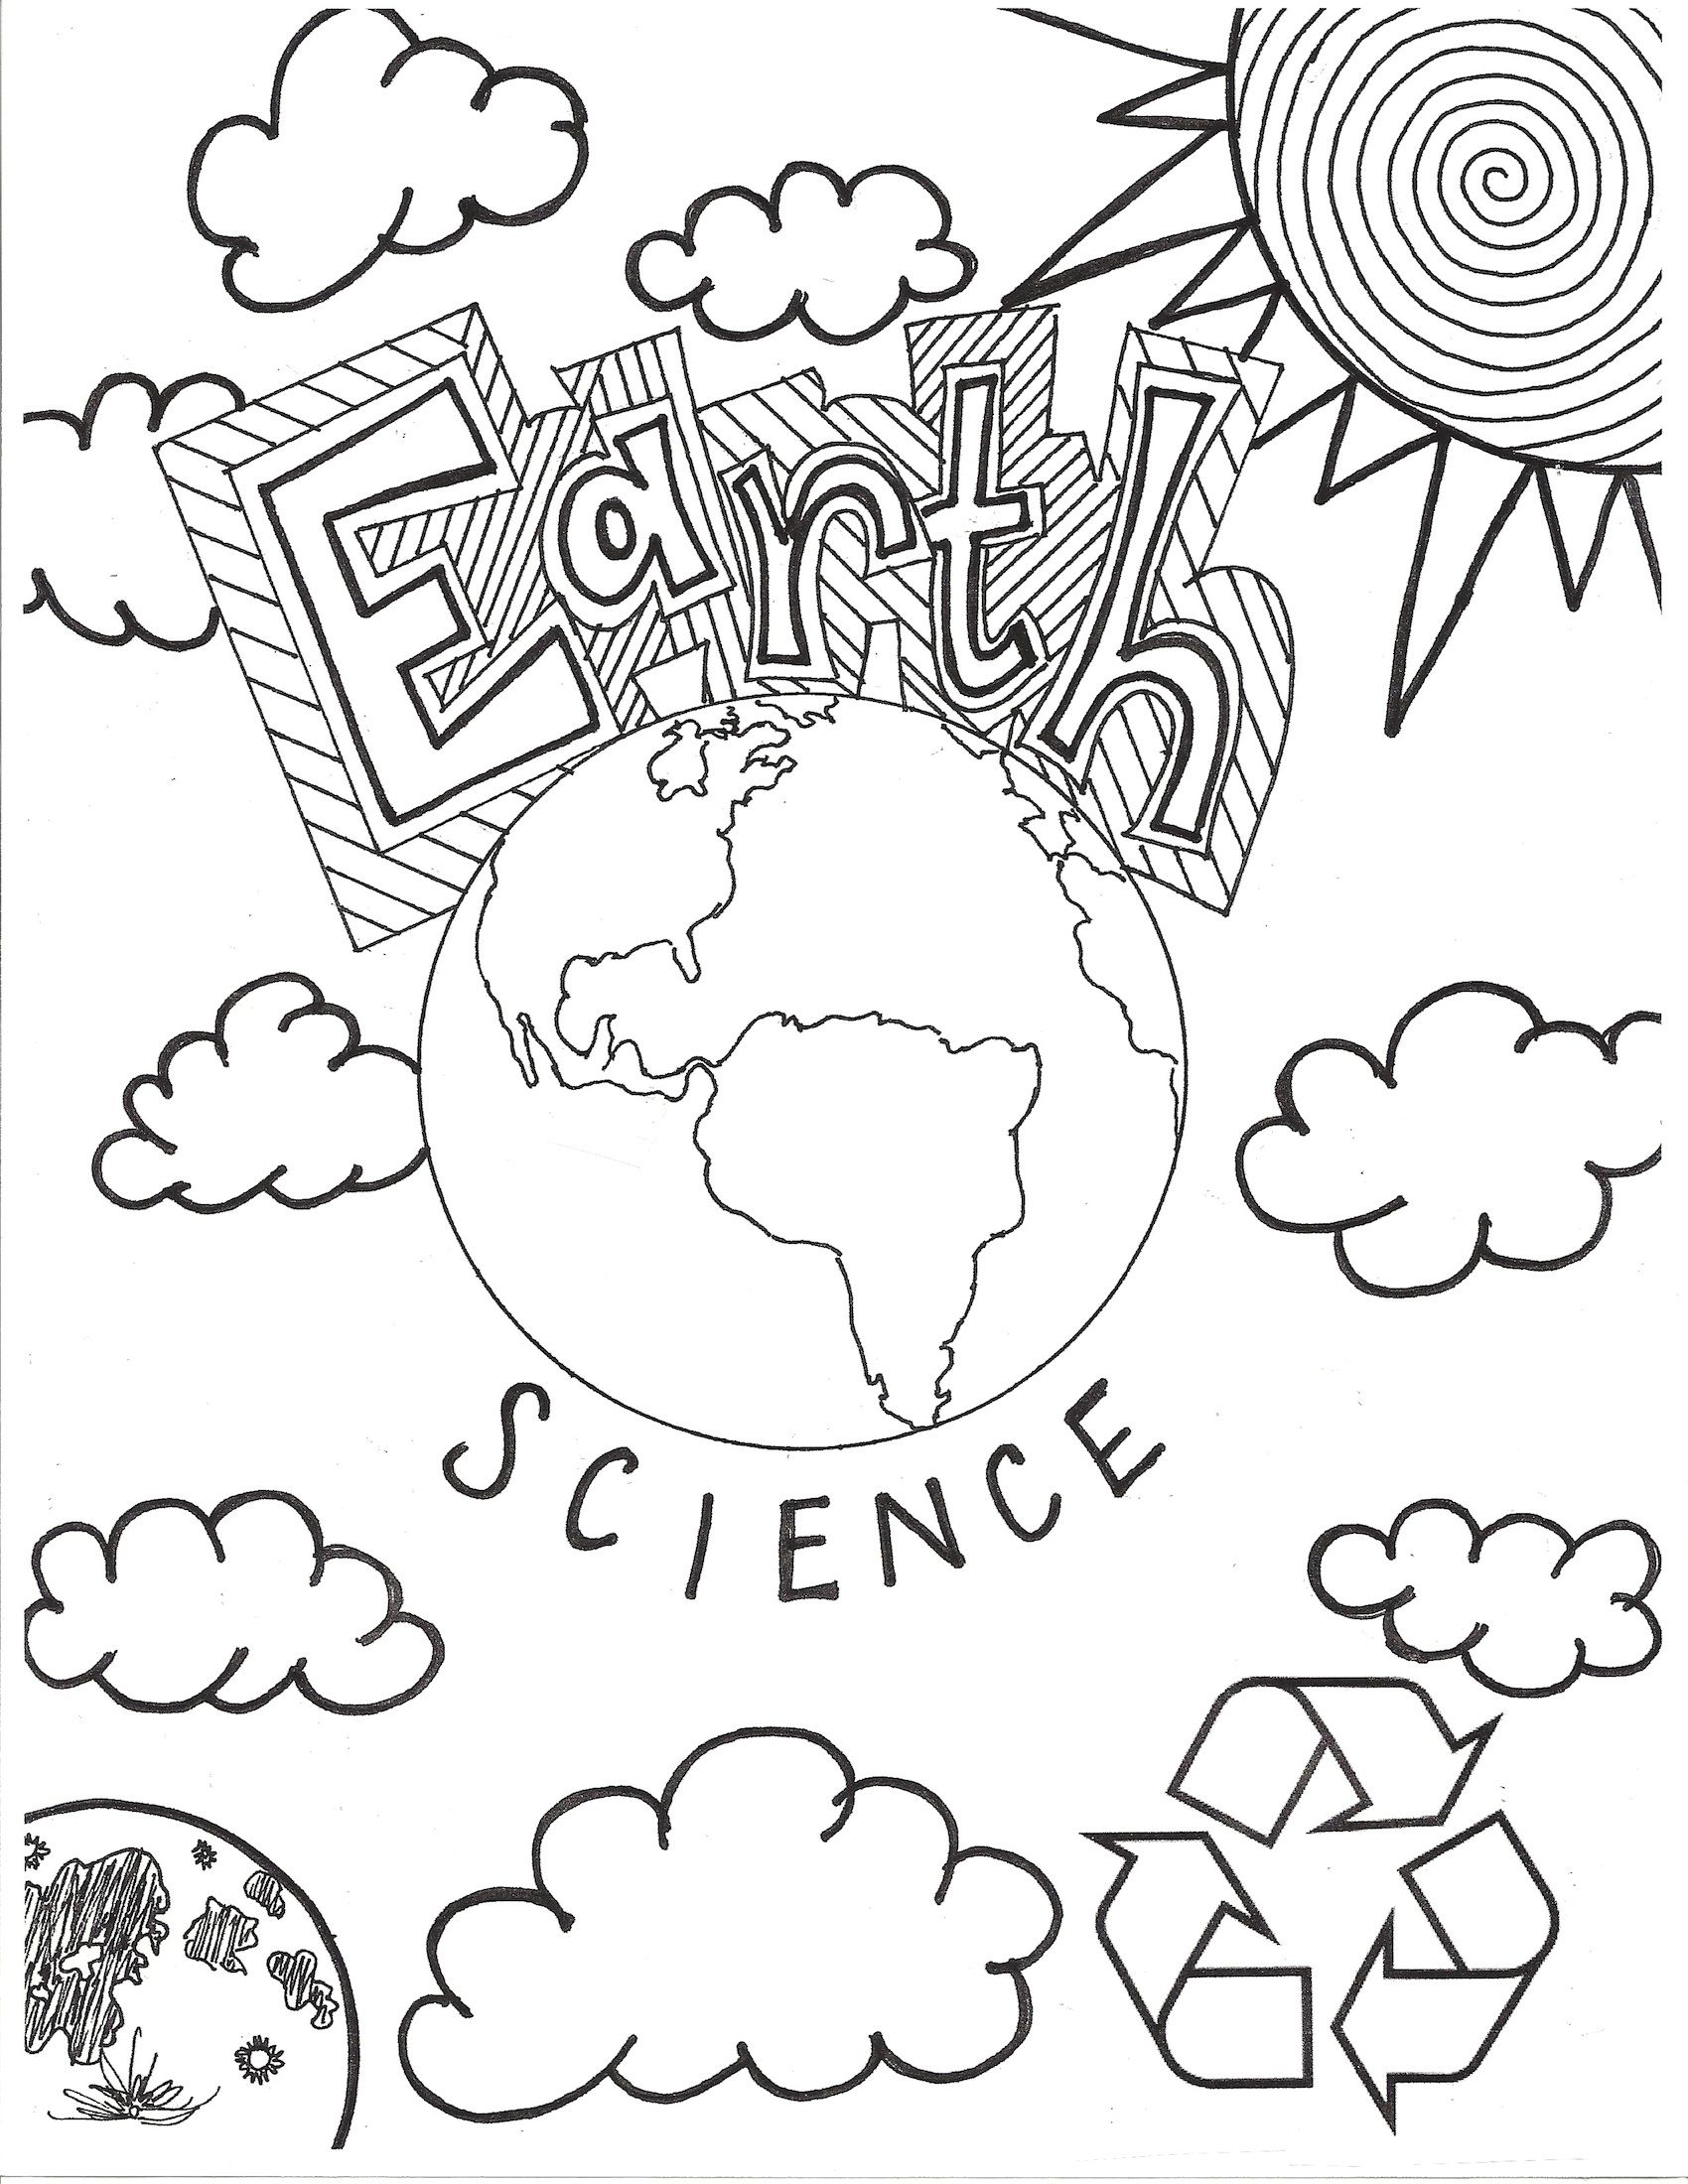 Summer coloring pages for middle school - Earth Science Coloring Page Cover Page Middle School